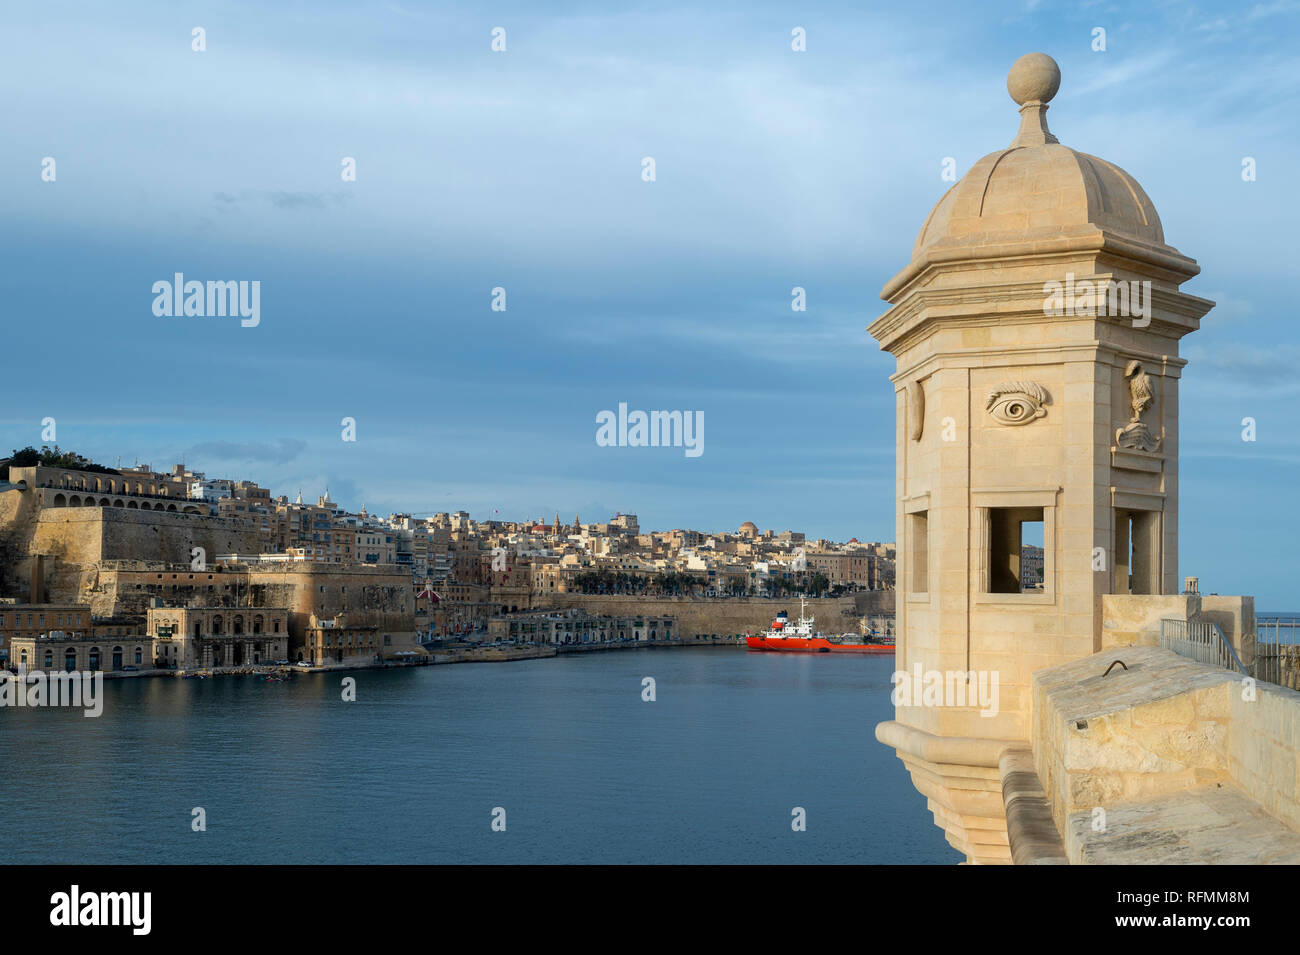 Sentrybox at Senglea Point, with the historic walled city of Valletta in the distance - Stock Image